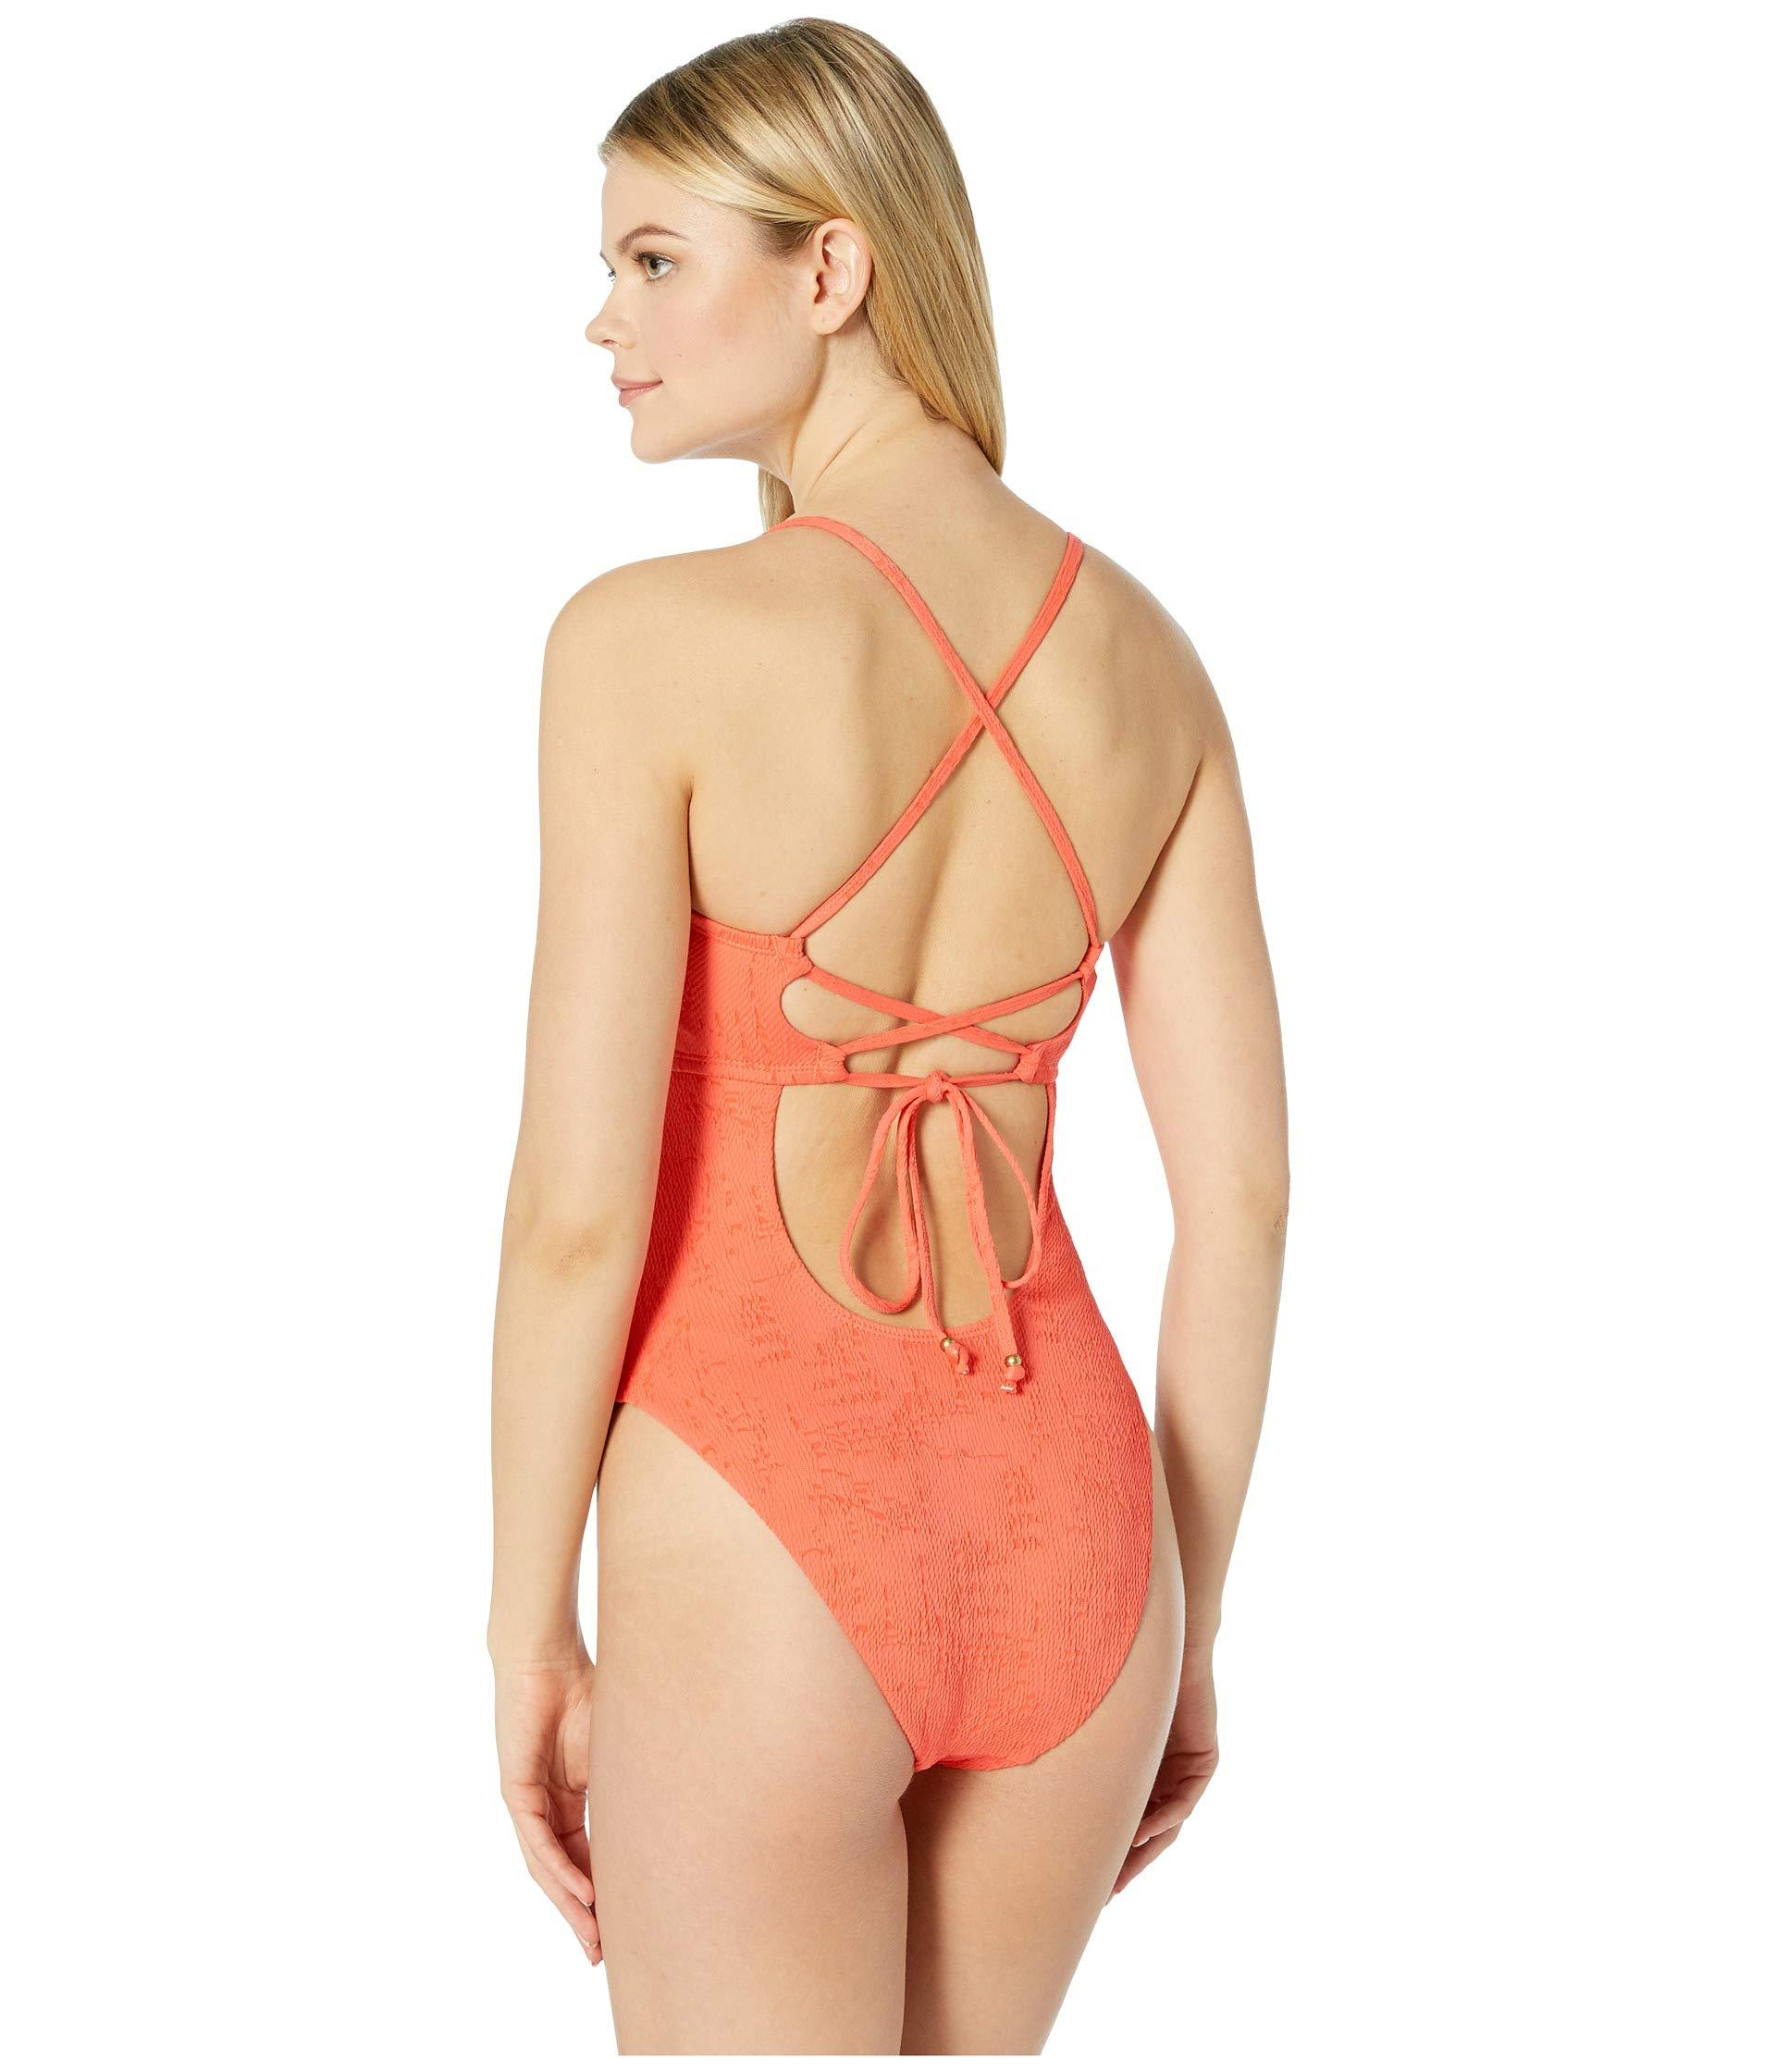 ea42e4b1dce Lucky Brand - Orange Doheny Beach One-piece Swimsuit (hot Coral) Women s  Swimsuits. View fullscreen